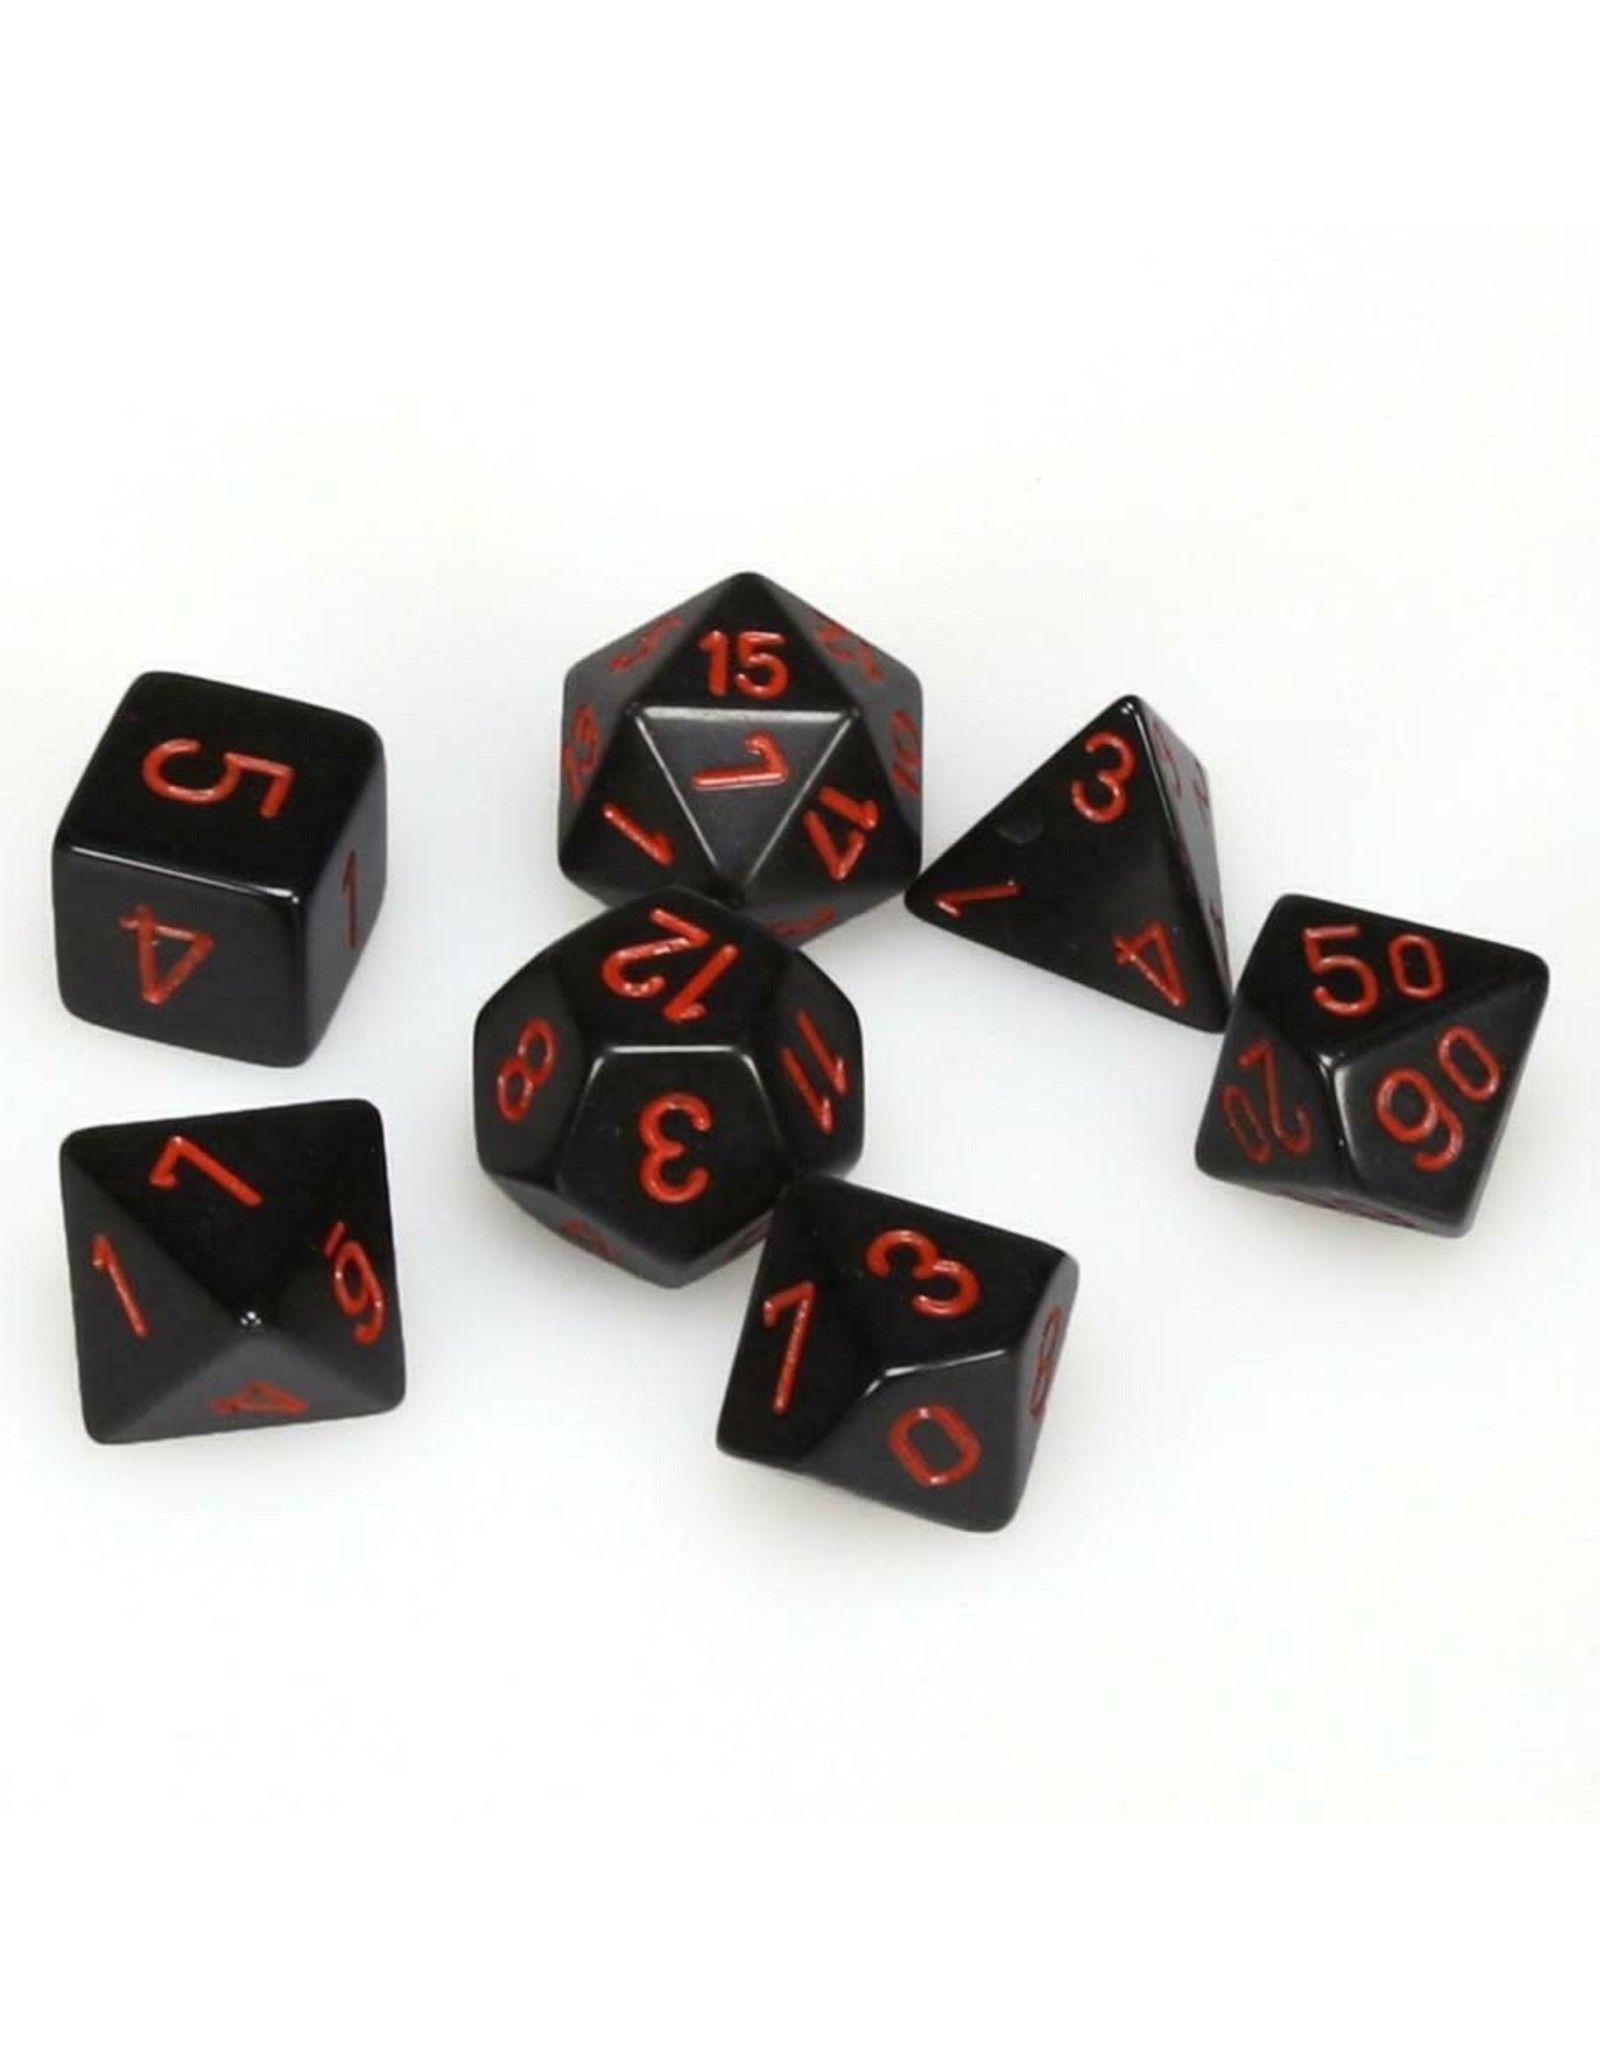 CHESSEX CHX 25418 7 PC POLY DICE SET OPAQUE BLACK W/RED